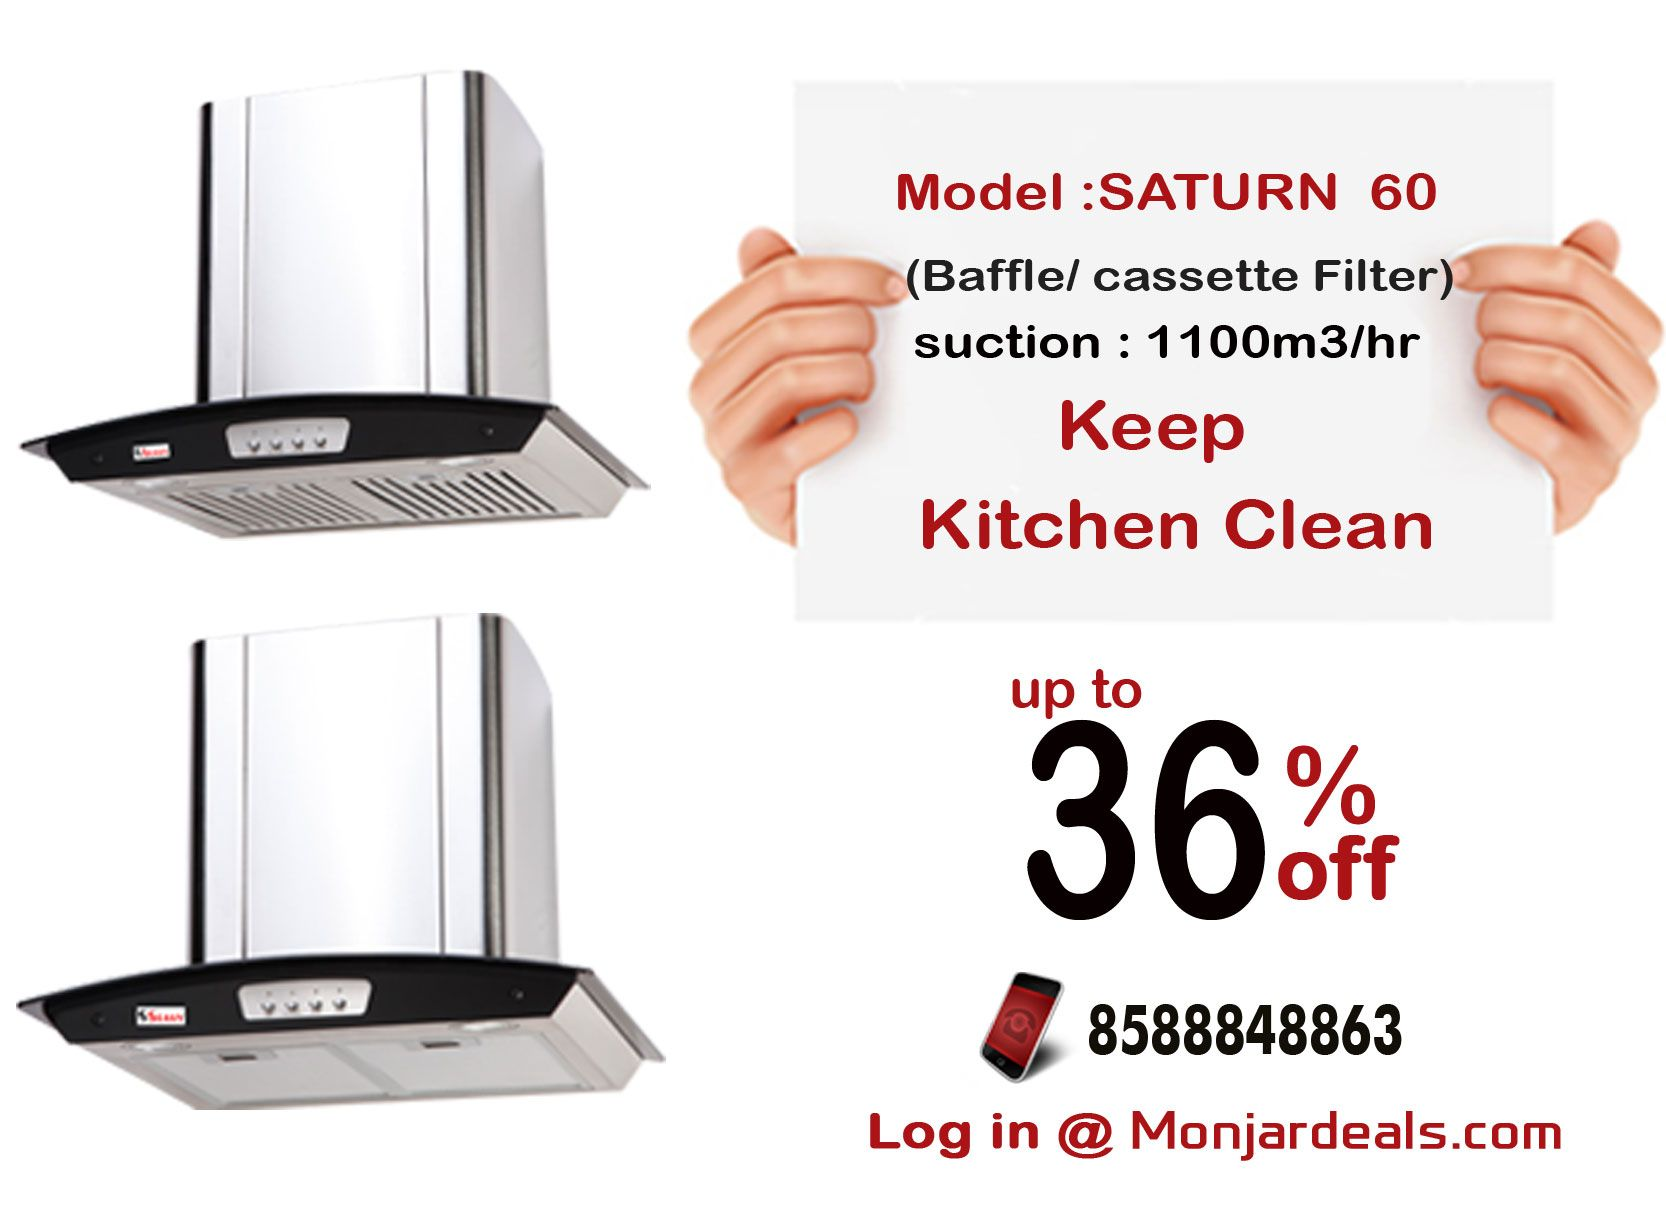 Offers on #seavy saturn 60 #kitchen #chimney #delhincr #india ...